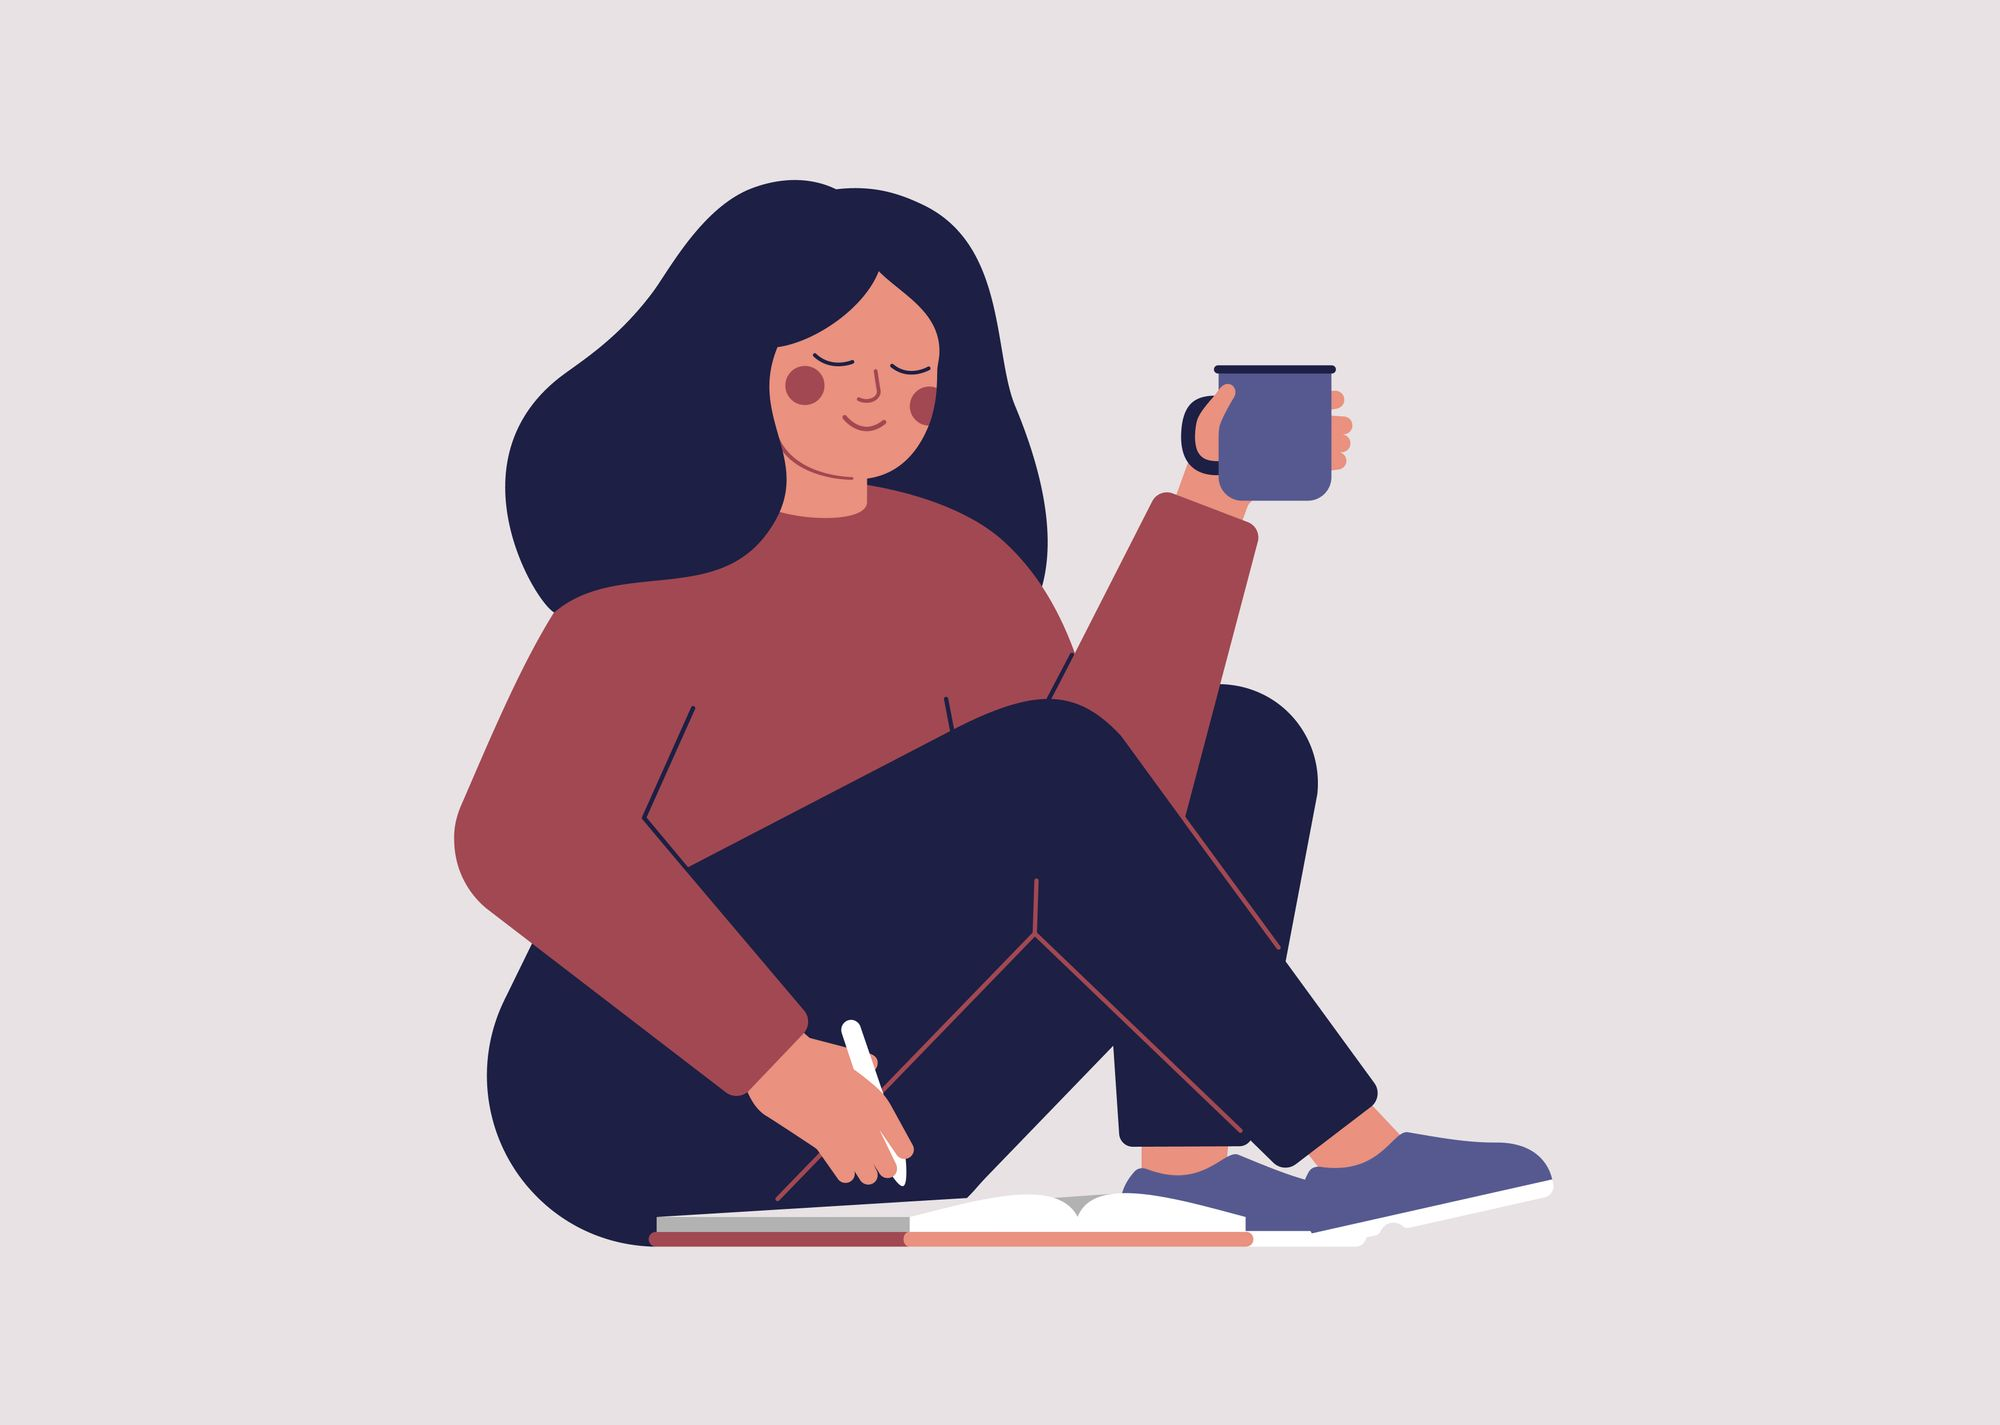 Illustrated woman sitting on the floor with a book making a list in a notebook. She is holding a cup or something. Possibly coffee of tea.